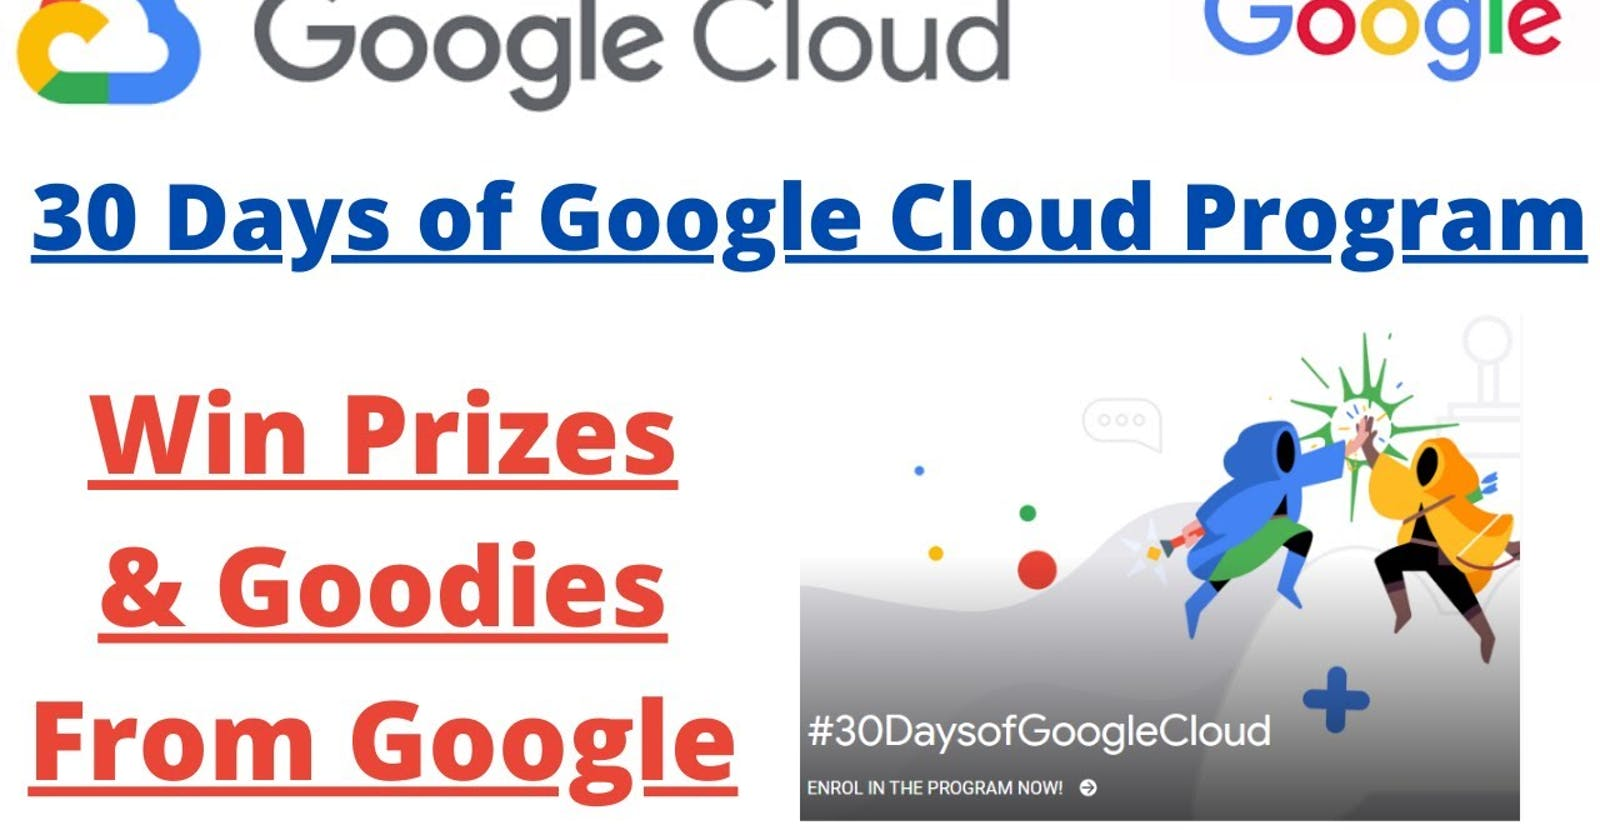 All About 30 Days of Google Cloud program and How you can Win Gooogle Cloud goodies Free of Cost